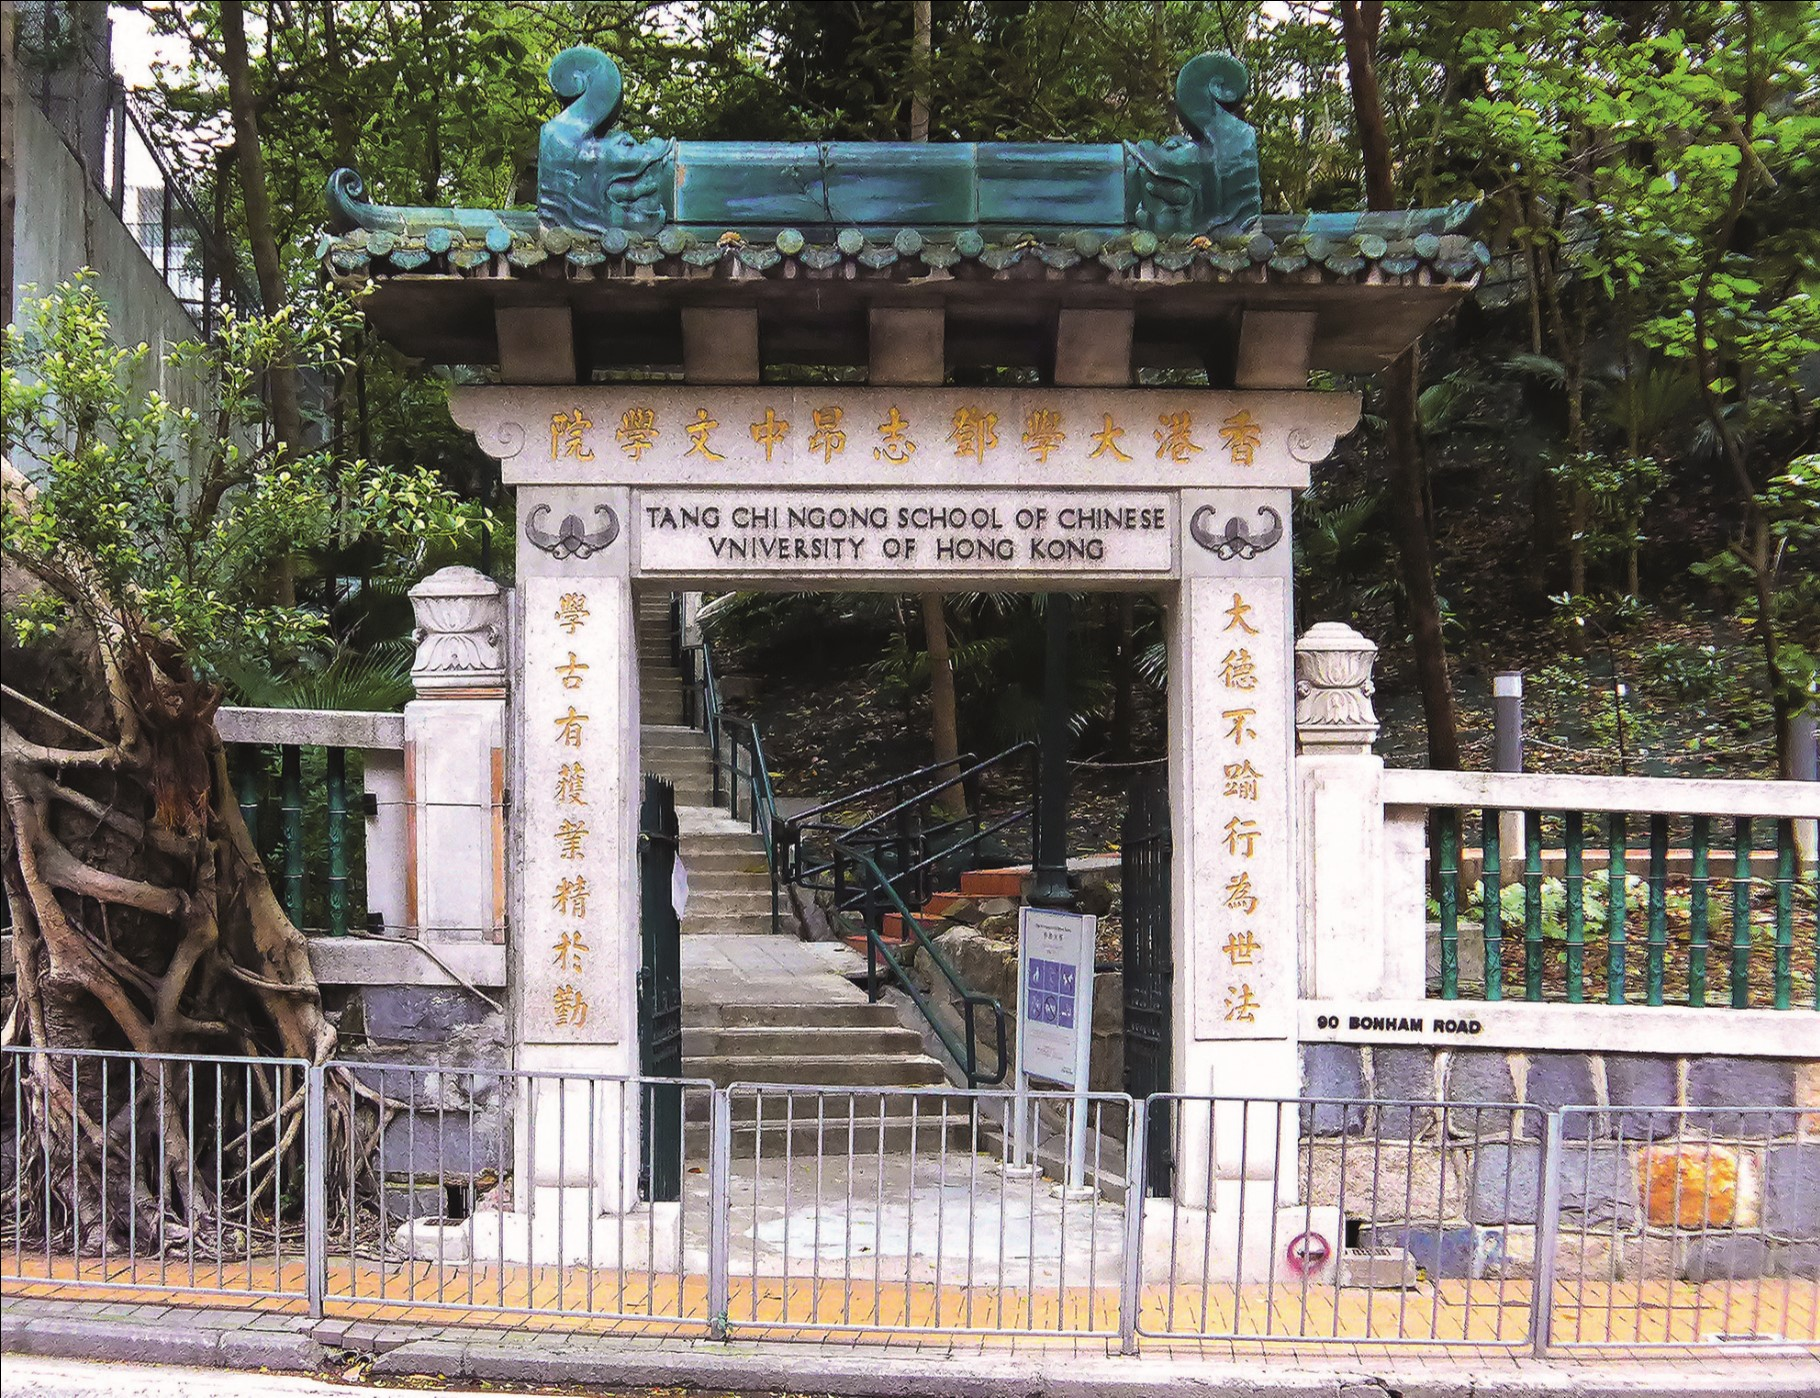 The gateway of the Tang Chi Ngong School of Chinese at the University of Hong Kong.jpg